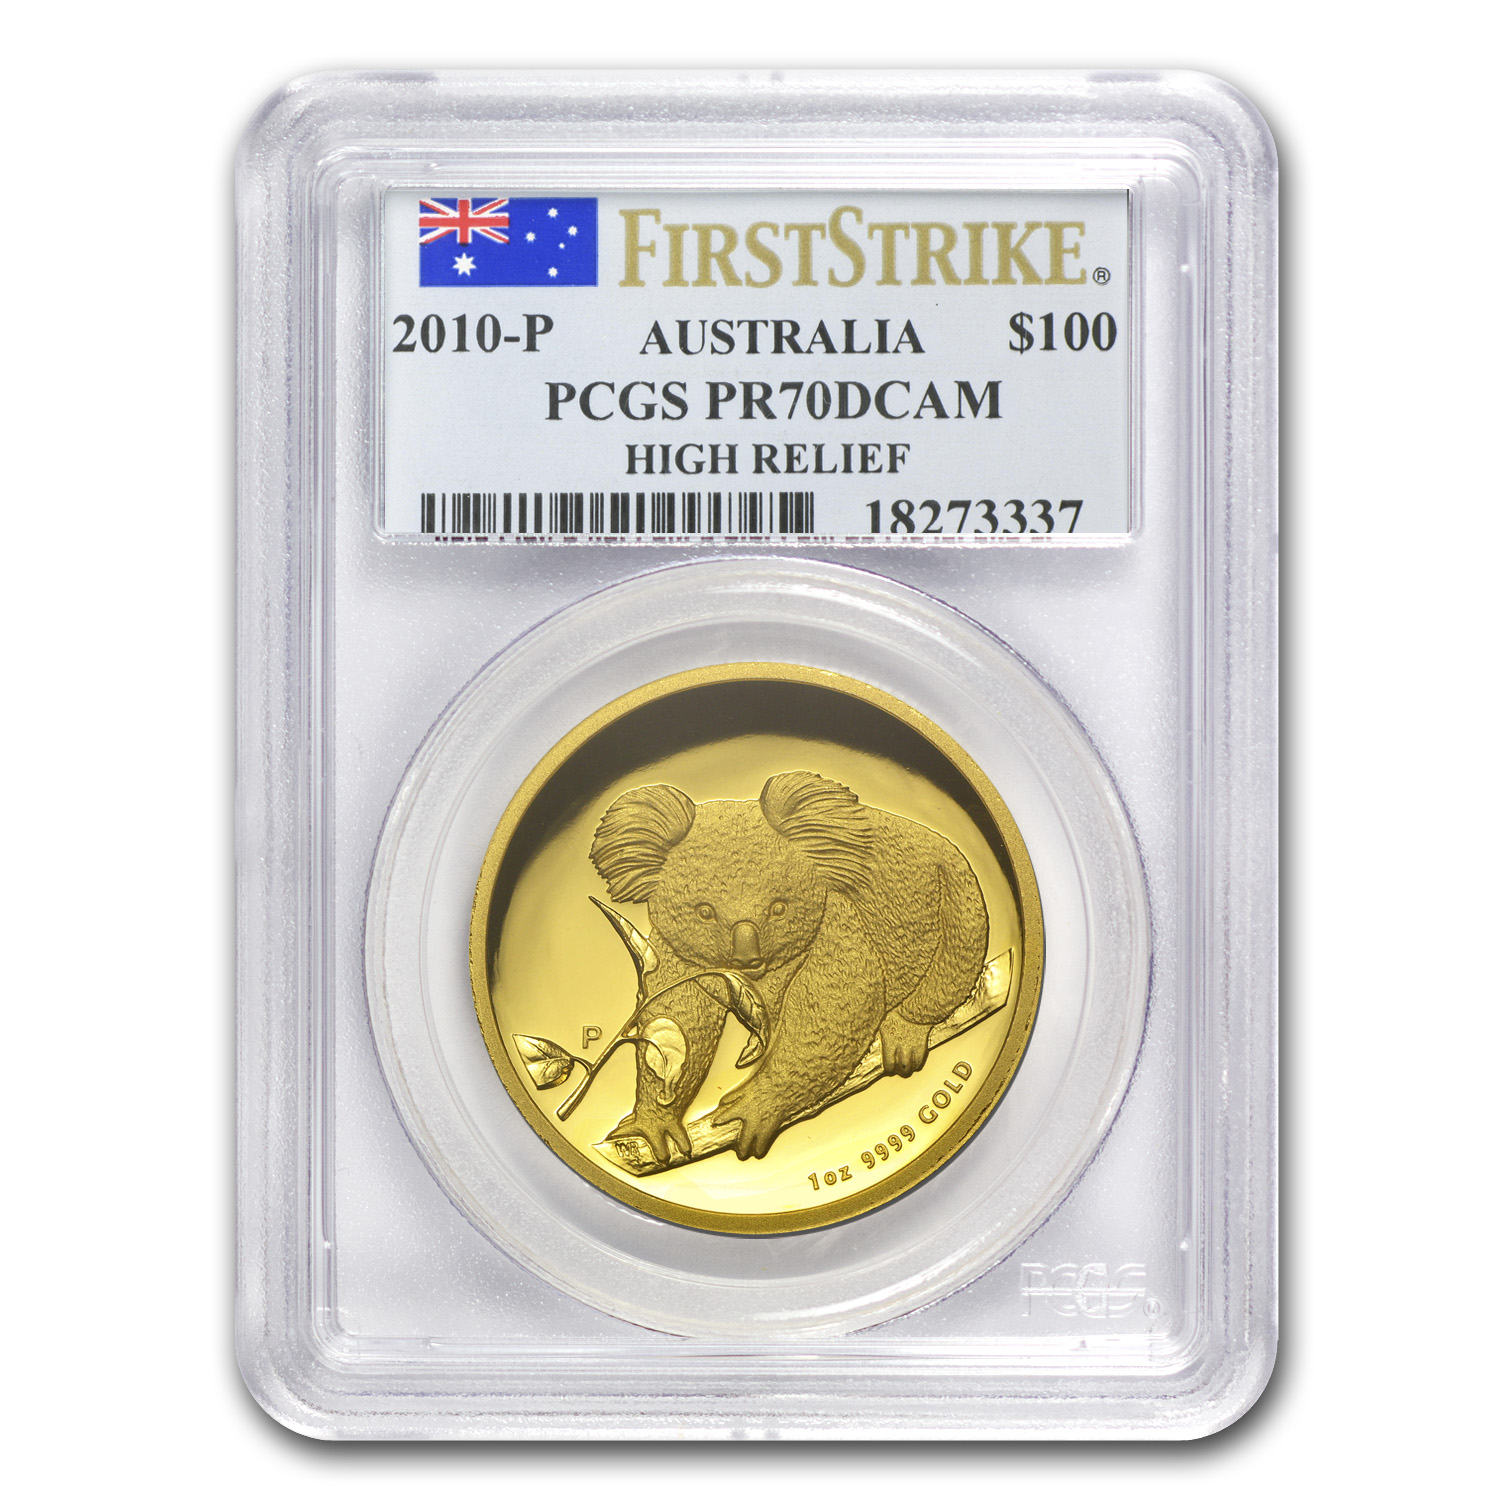 2010-P 1 oz Australian Gold Koala PR-70 PCGS (FS, High Relief)